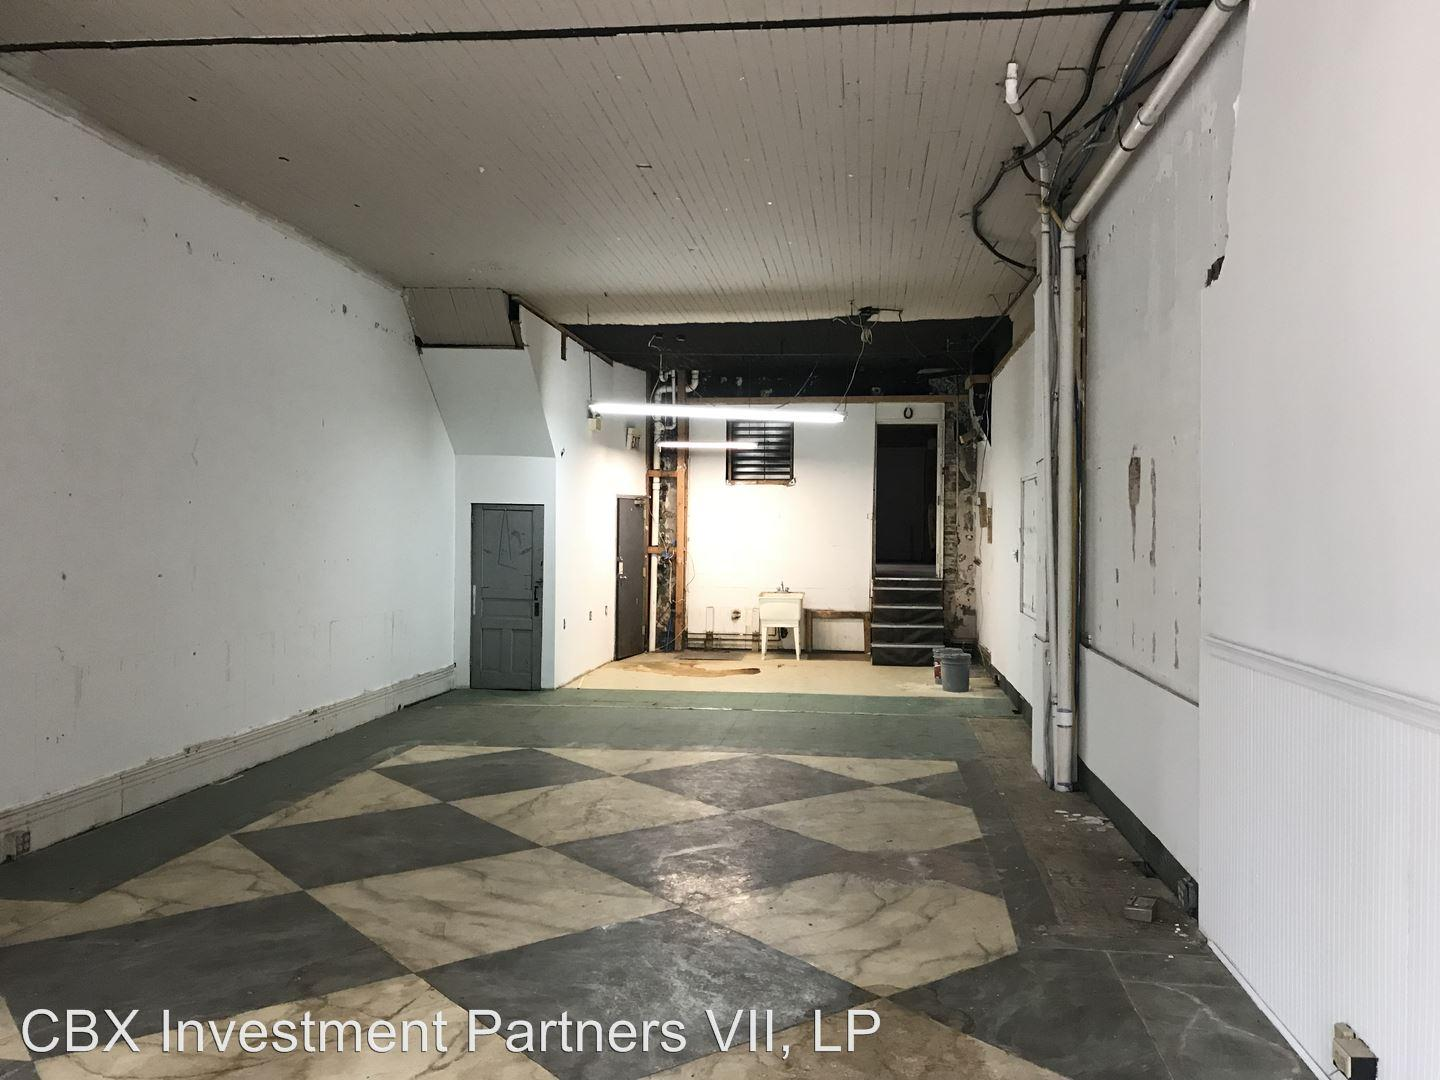 4603 Butler St. - Retail Space